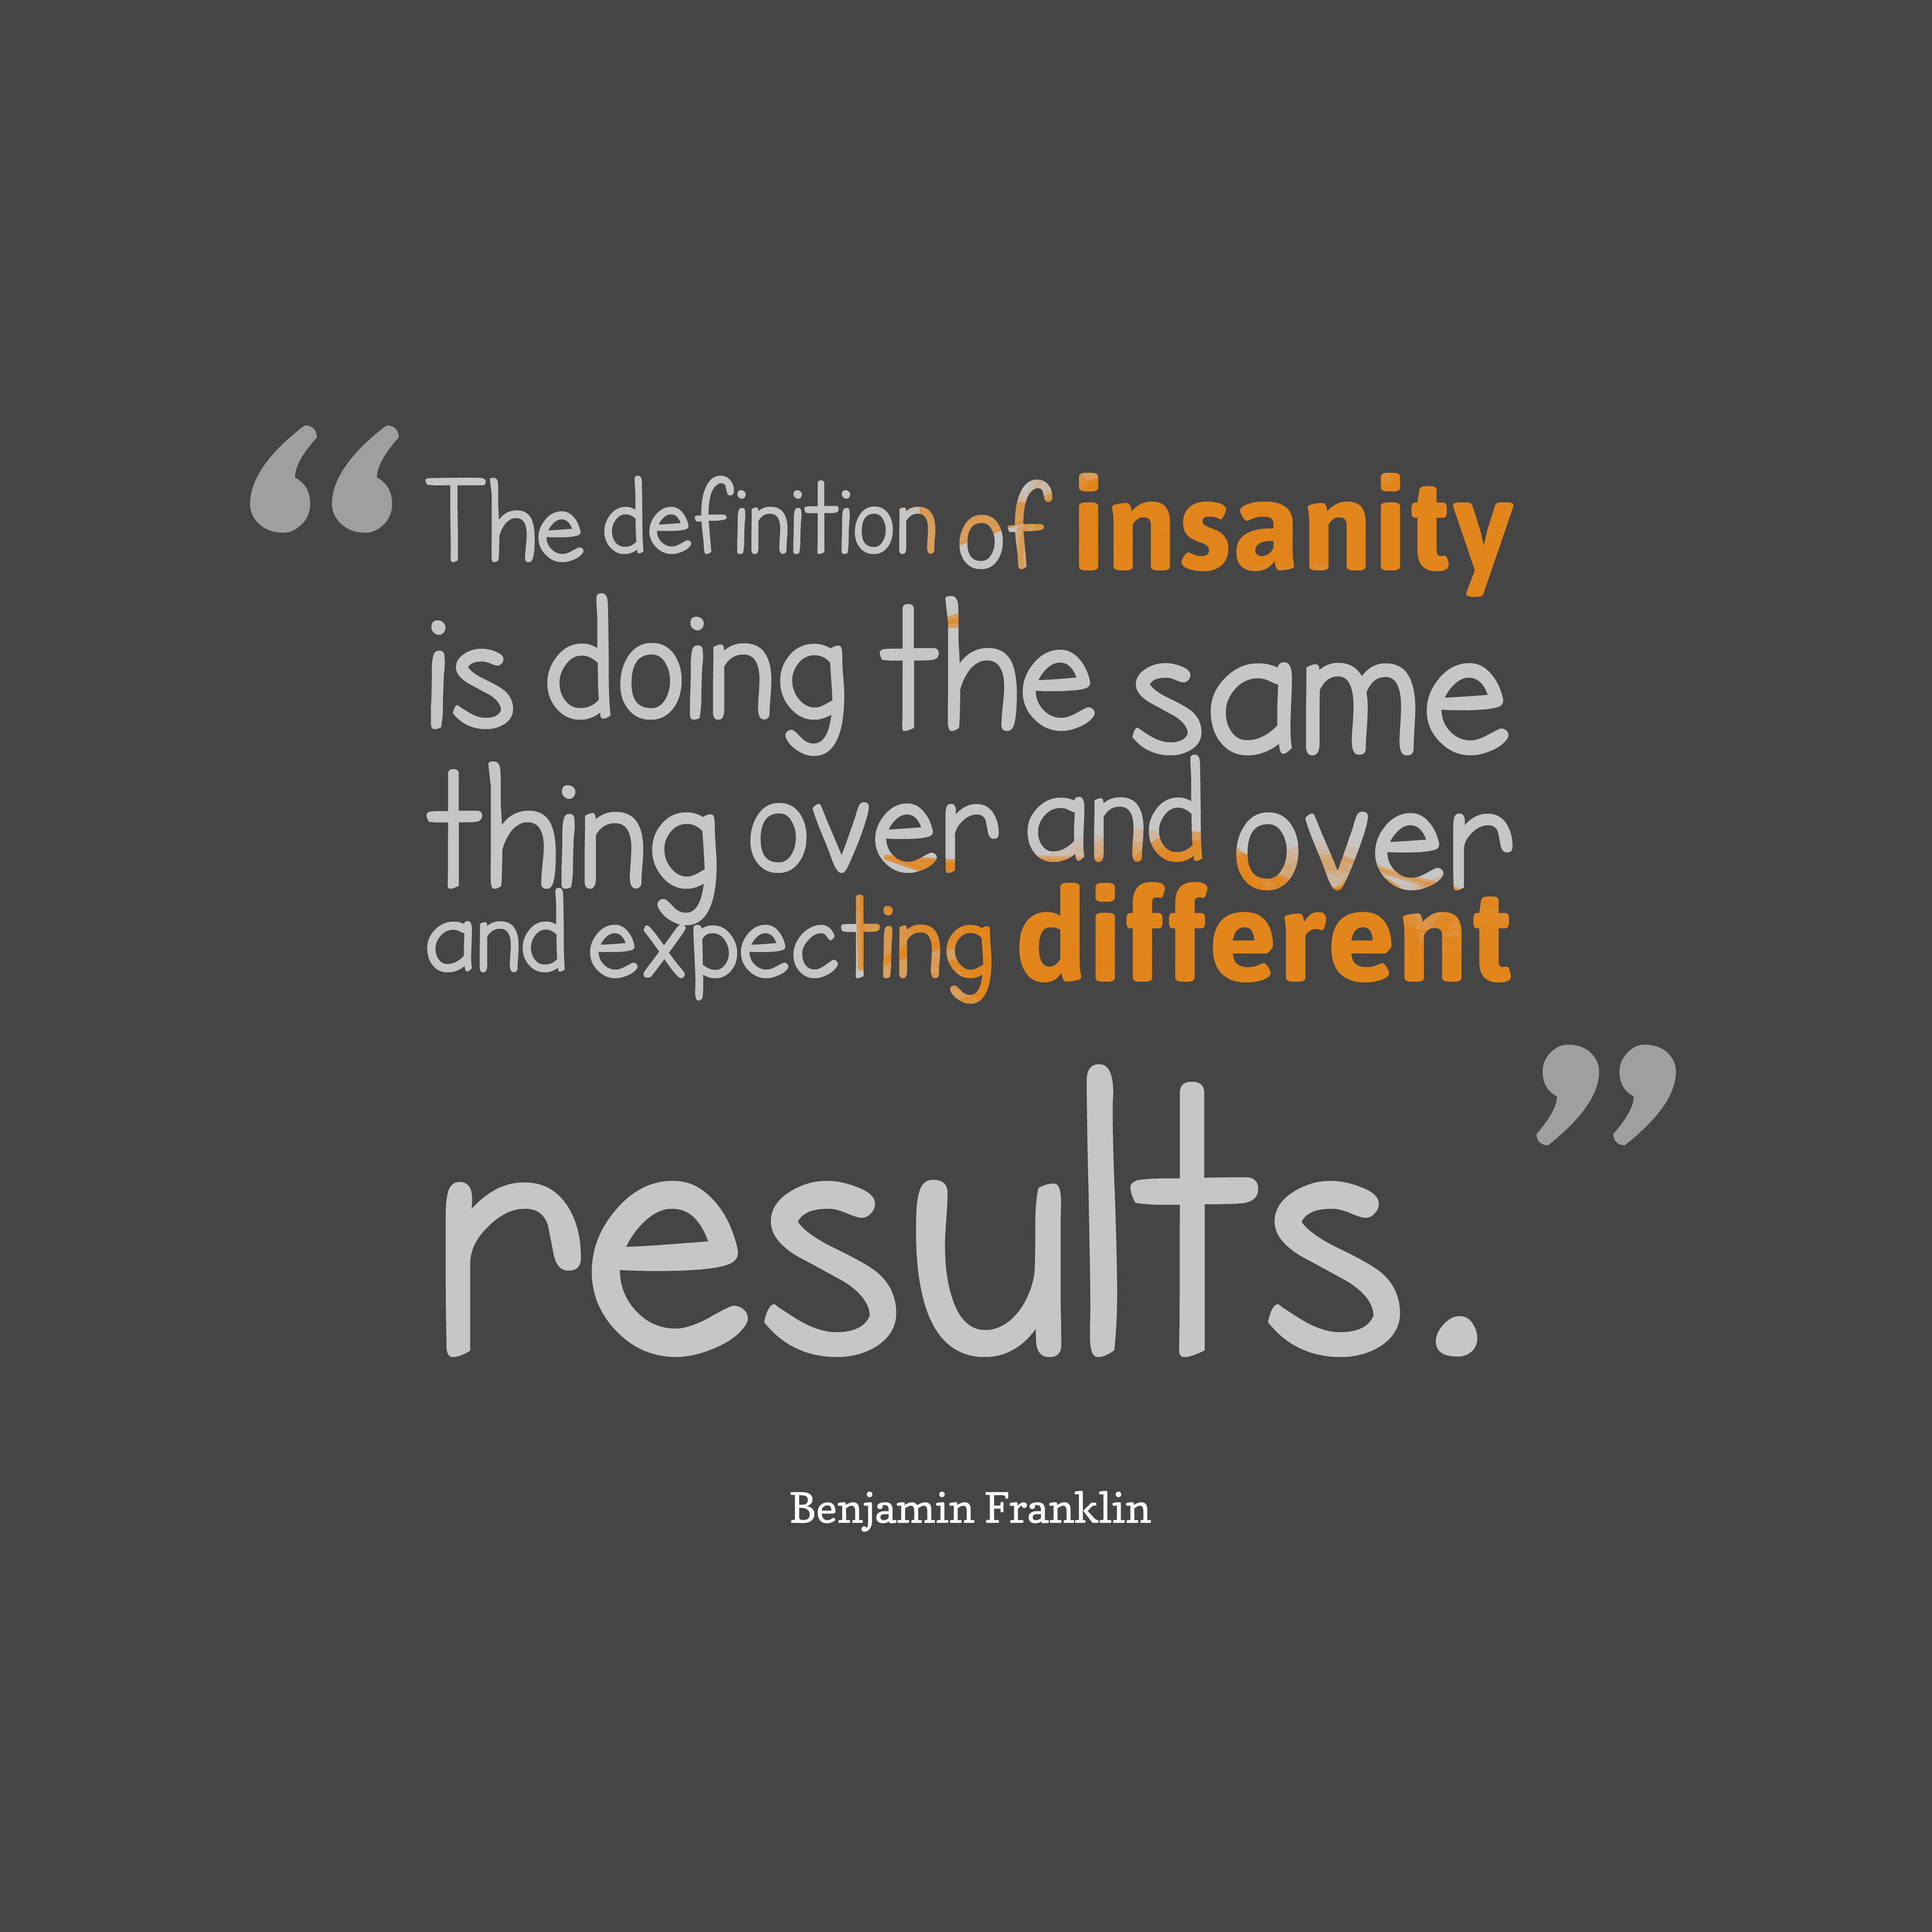 Quotes image of The definition of insanity is doing the same thing over and over and expecting different results.